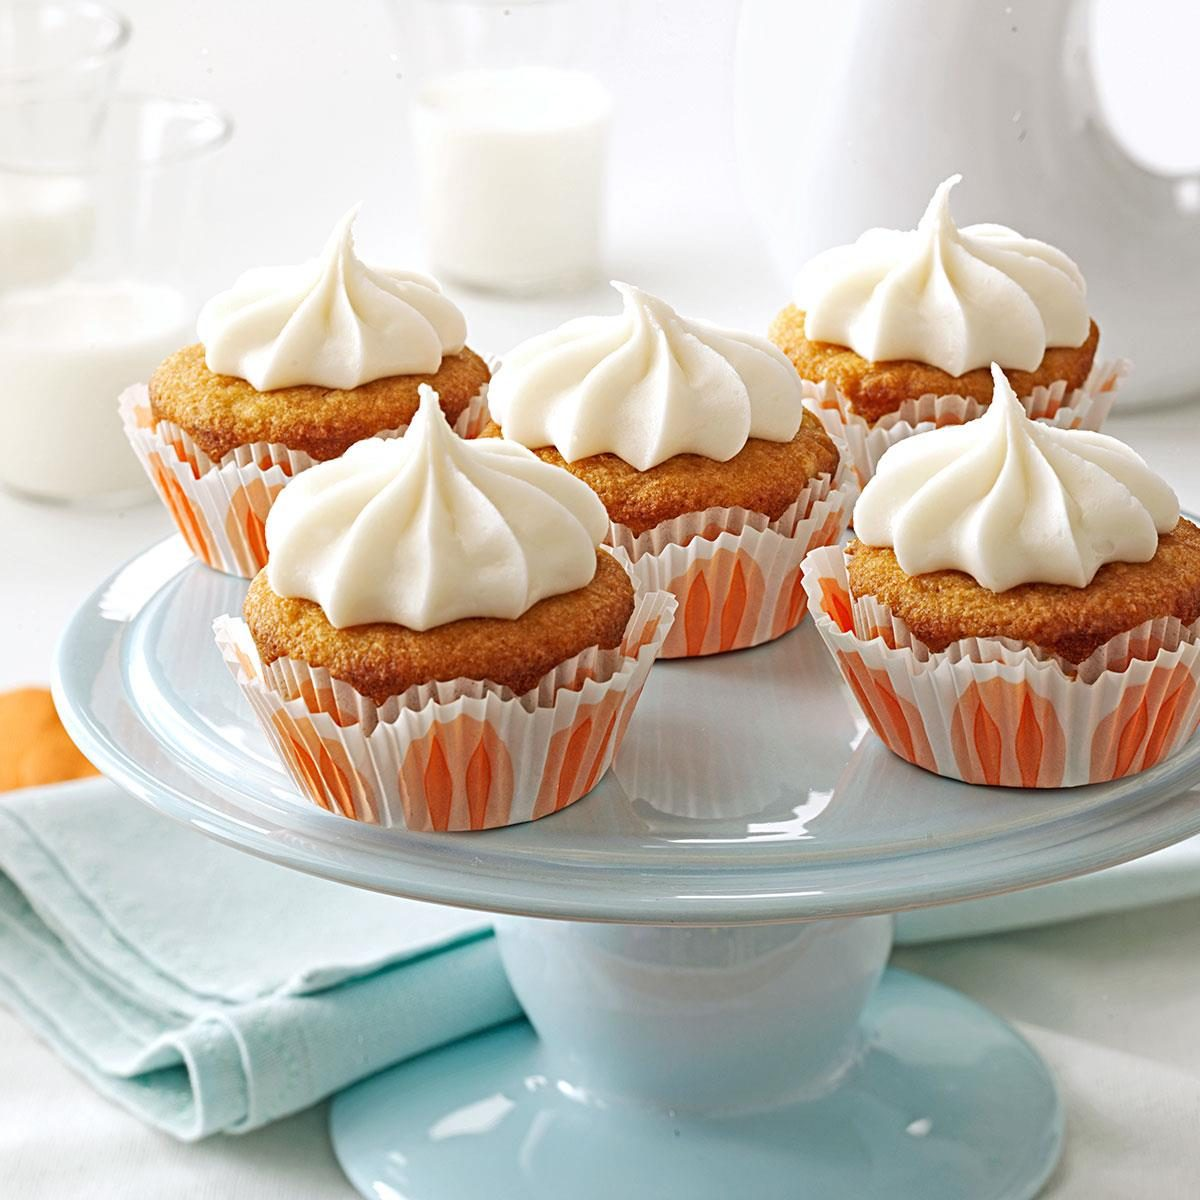 Amaretto Butter Frosting